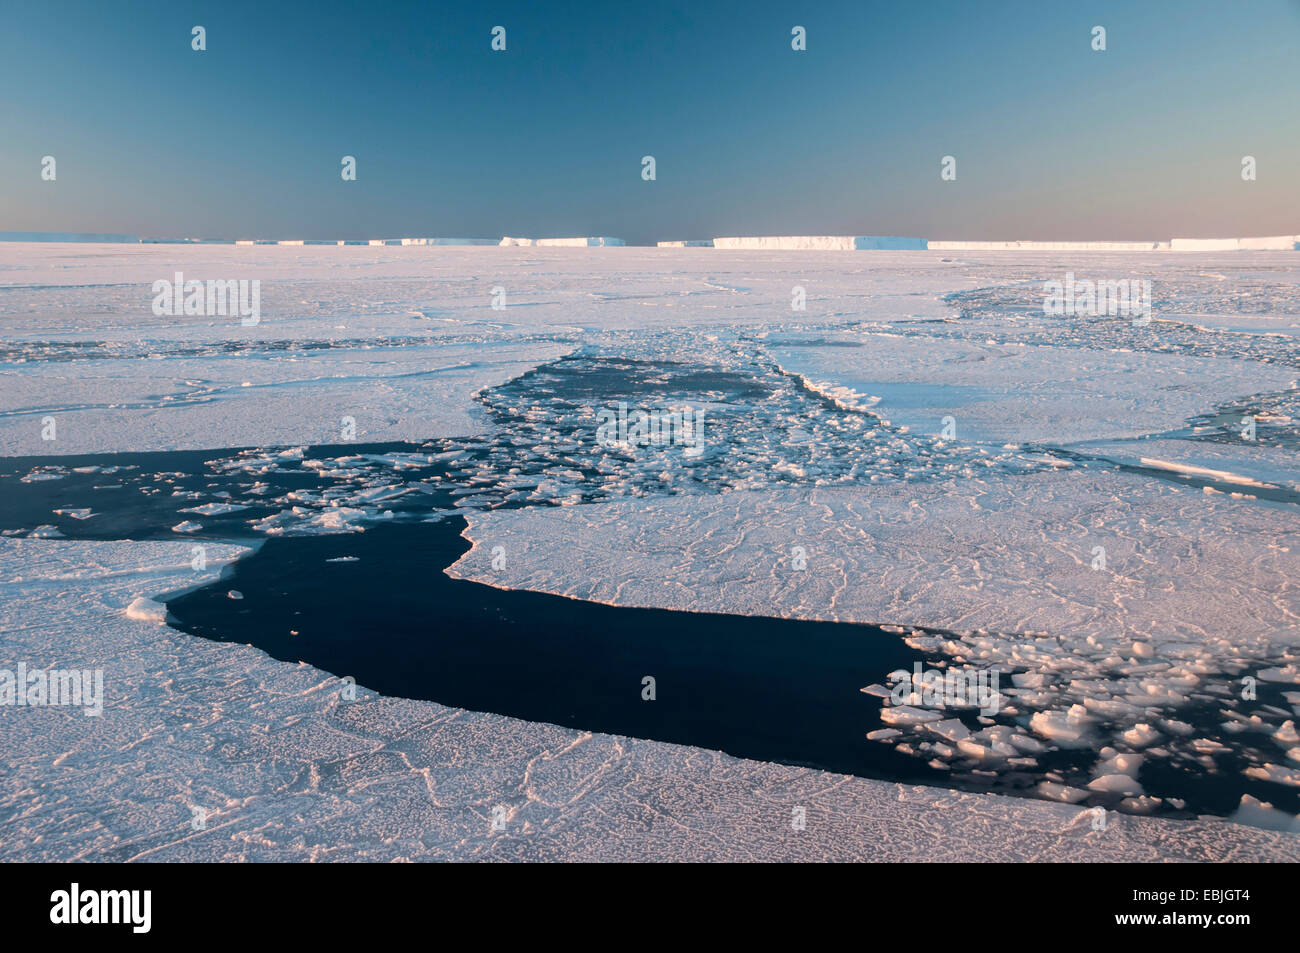 waterways through the pack ice field opened by icebreakers at extreme frost near the iceberg resting place Austasen - Stock Image